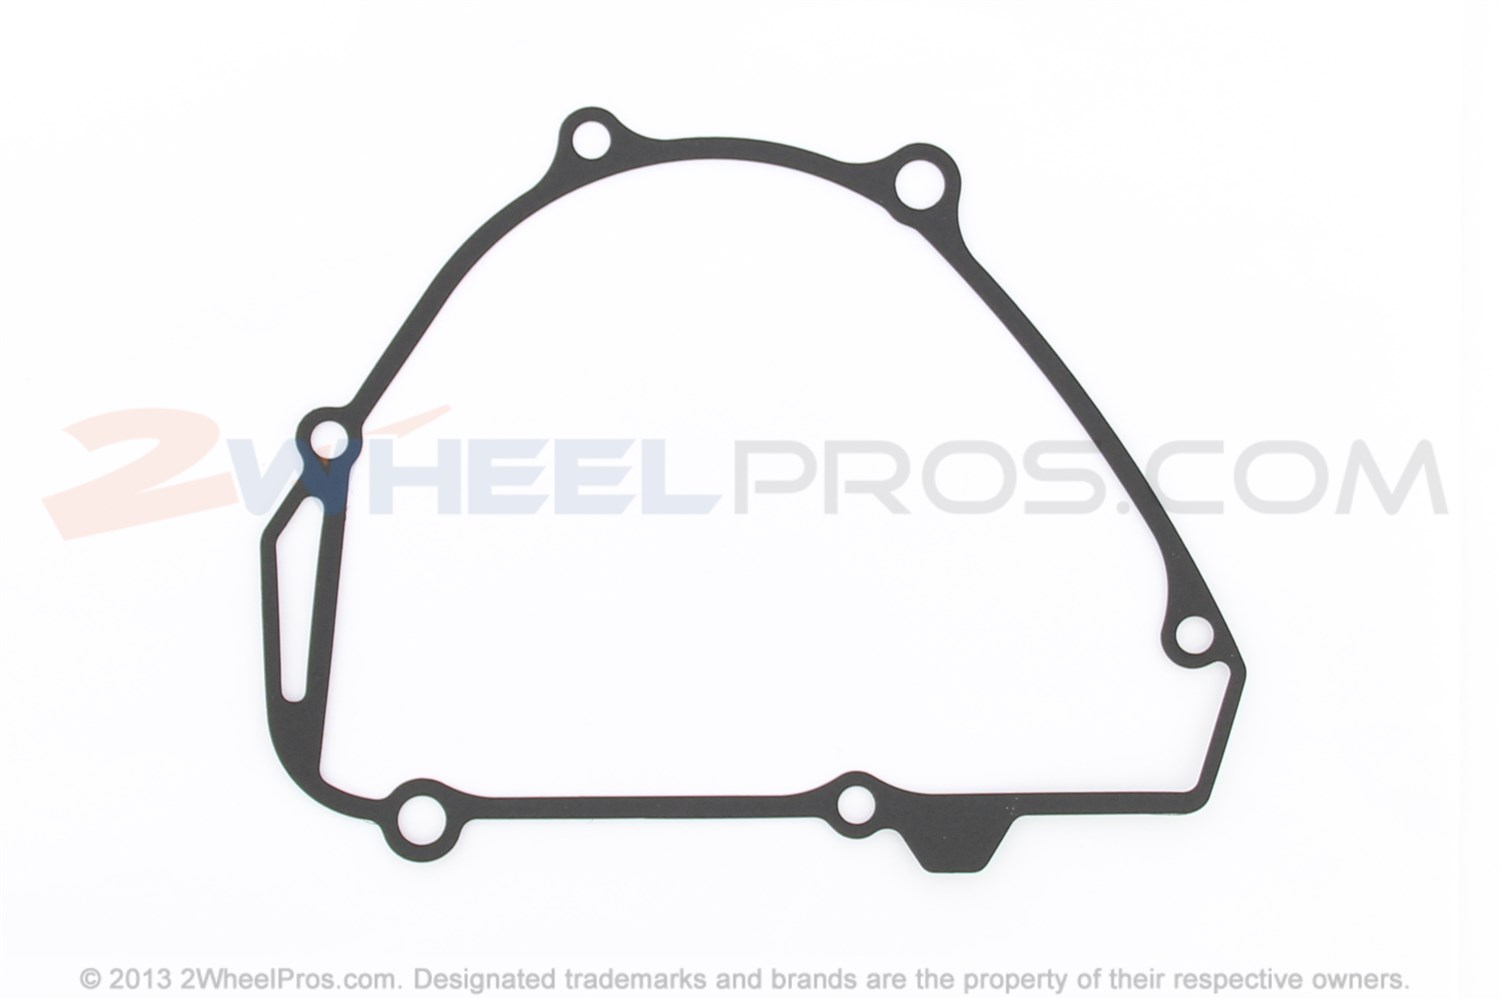 Engine Cover(s) replacement parts for 2011 Kawasaki KX250F